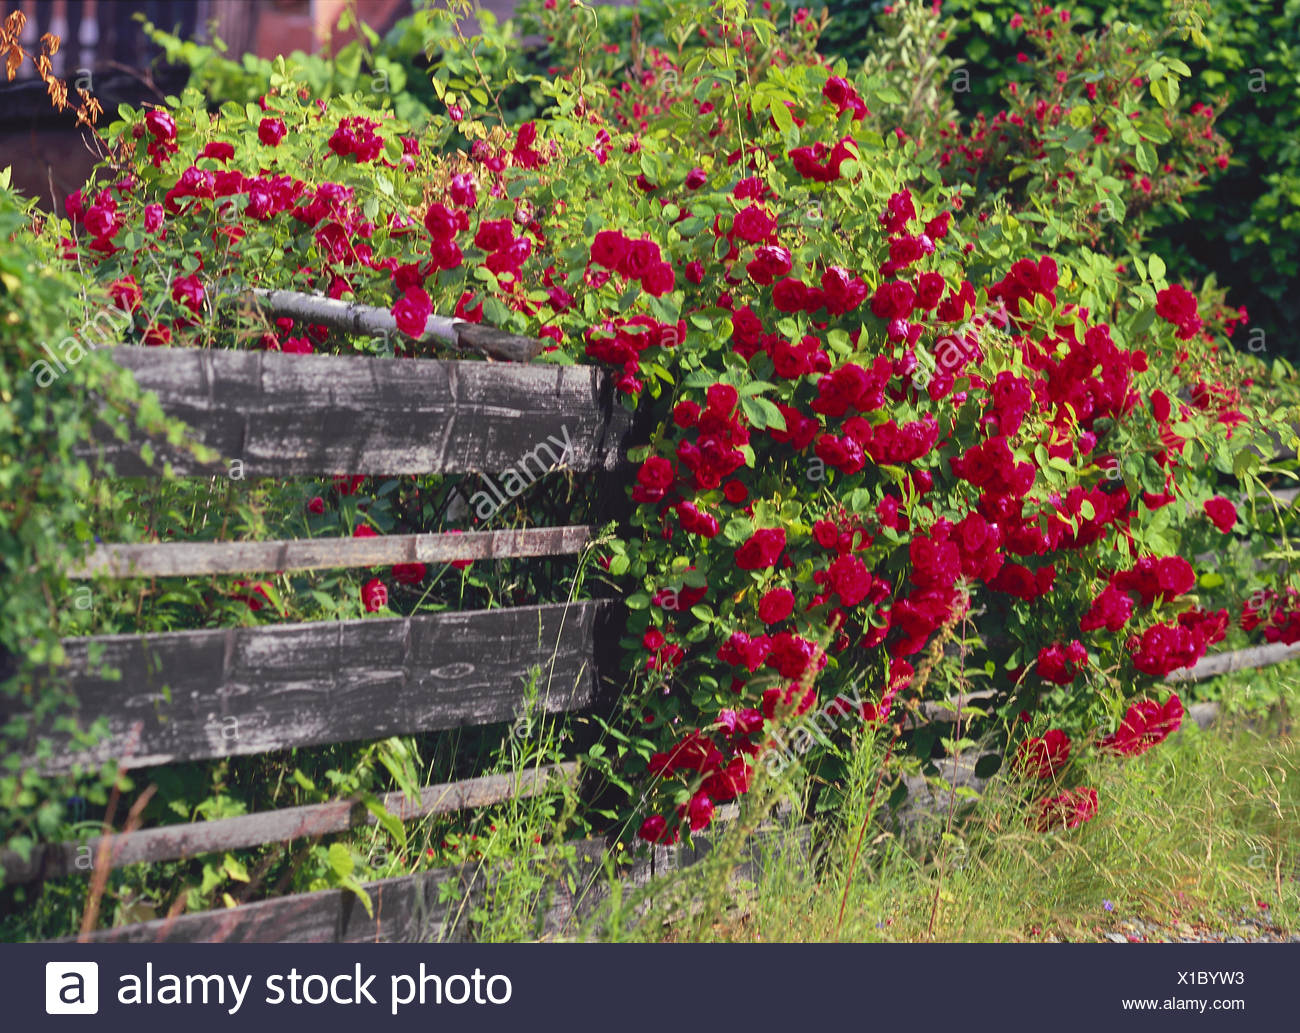 Fence, Climbing Roses, Red, Blossom, Garden, Garden Fence, Fence, Boards,  Wooden Fence, Wooden Boards, Plant, Flowers, Roses, Summers, Blossoms, ...